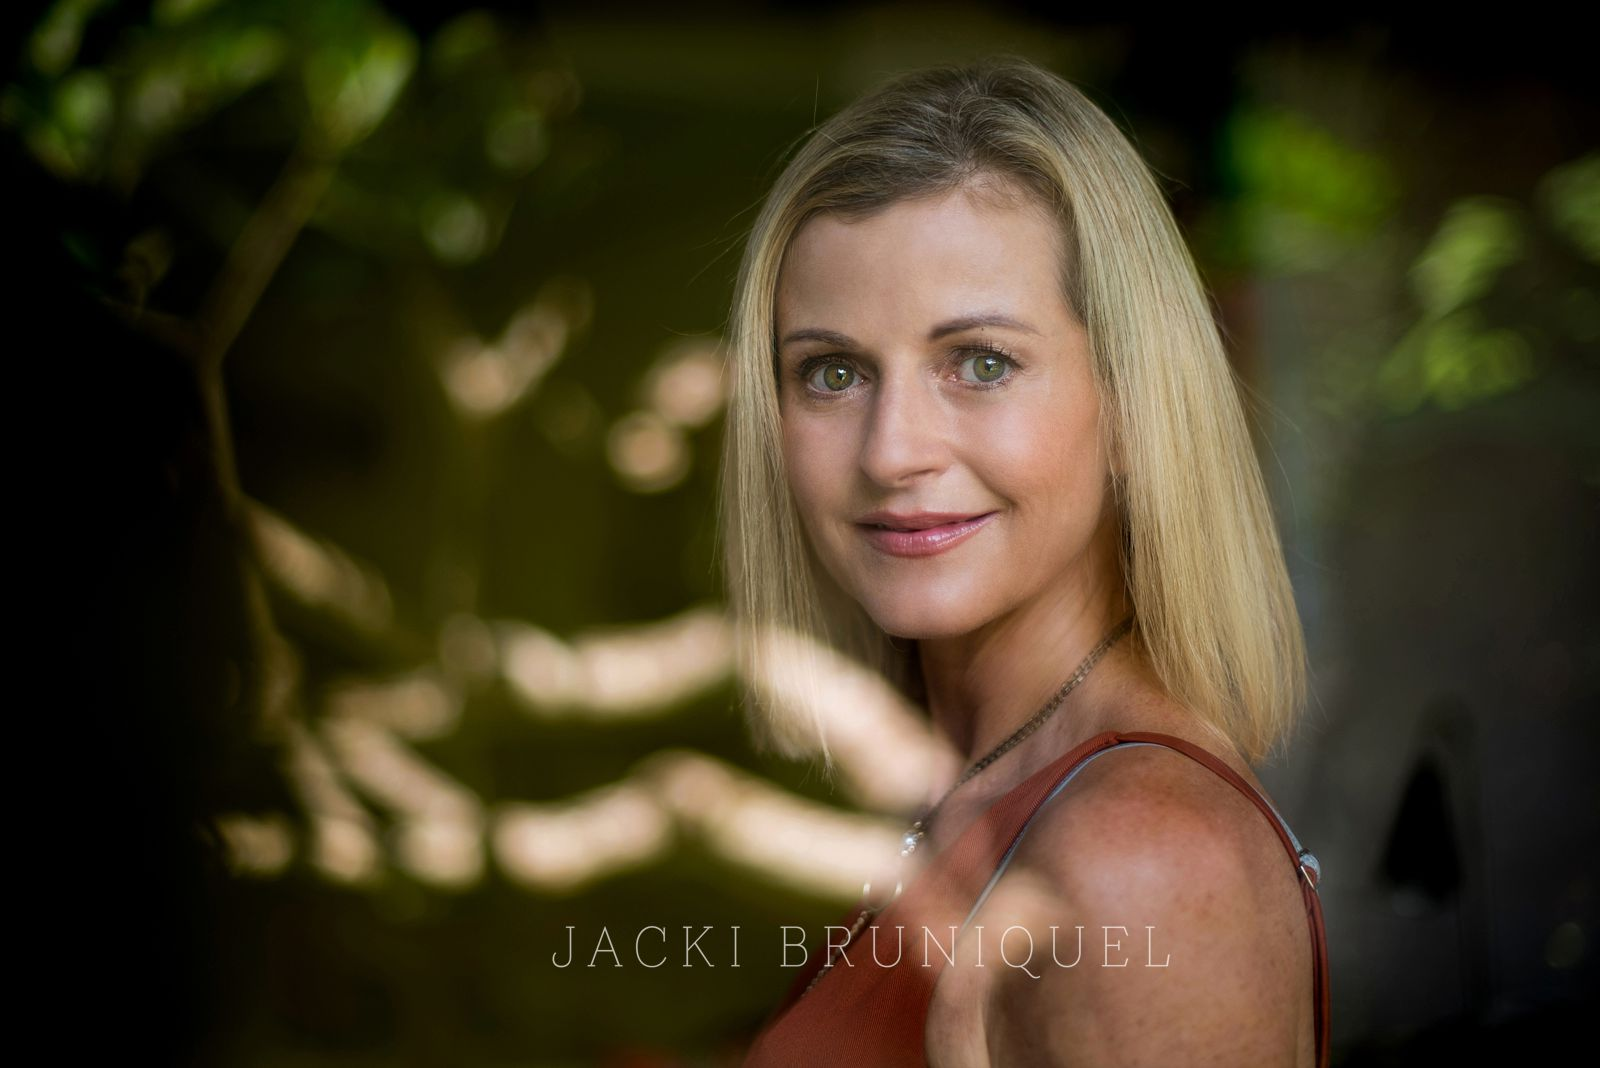 Creative branding shoot, photographed in Bali by top South African portrait photographer- Jacki Bruniquel.